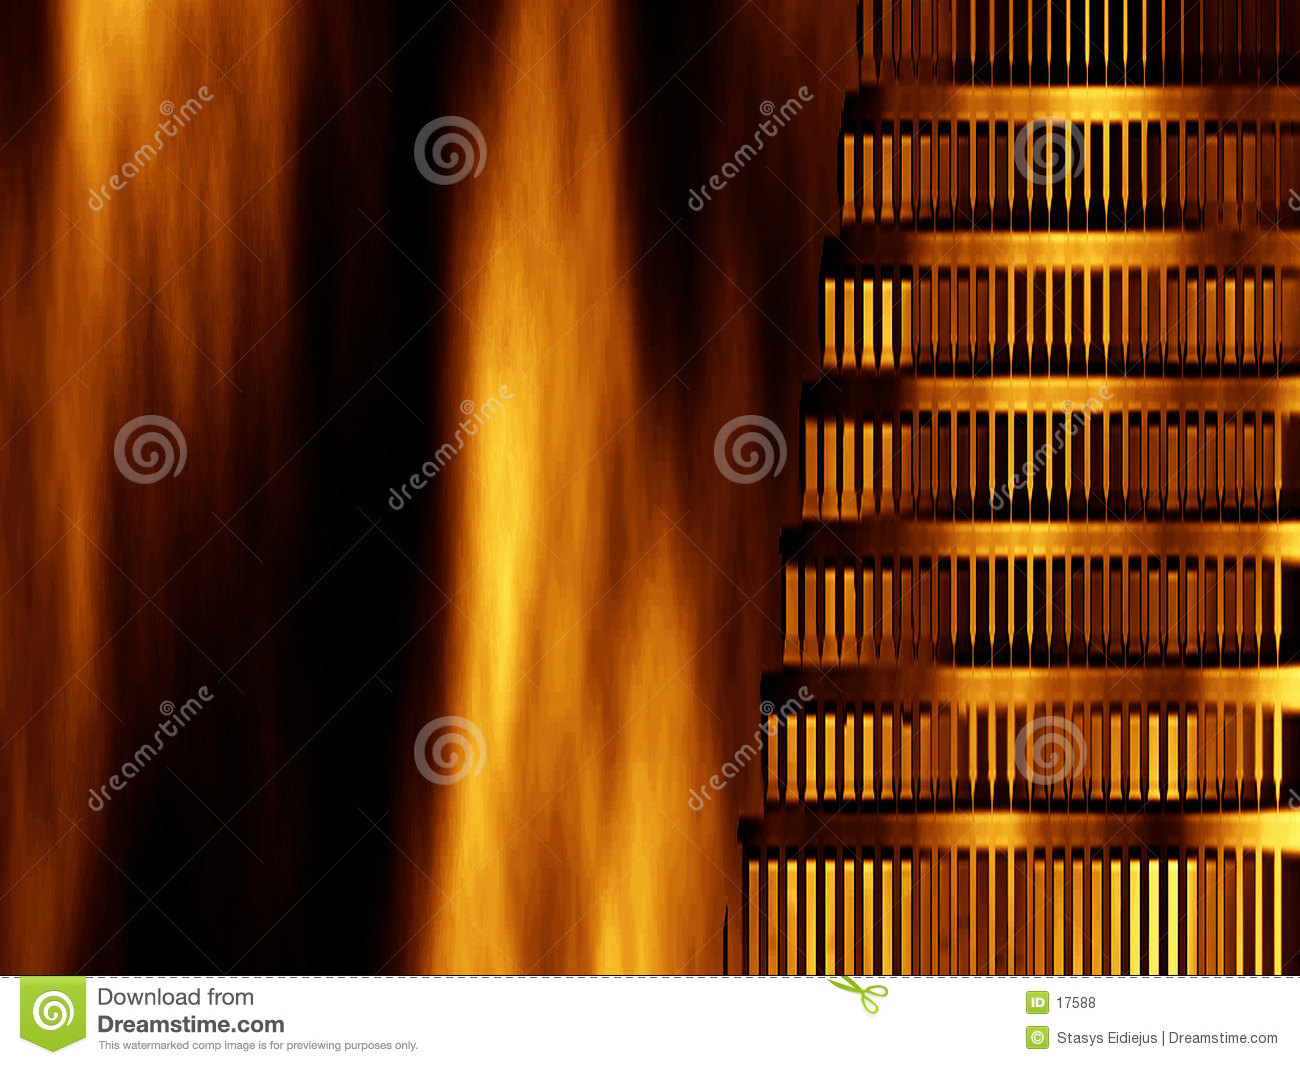 Abstract background- Nero burned Rome